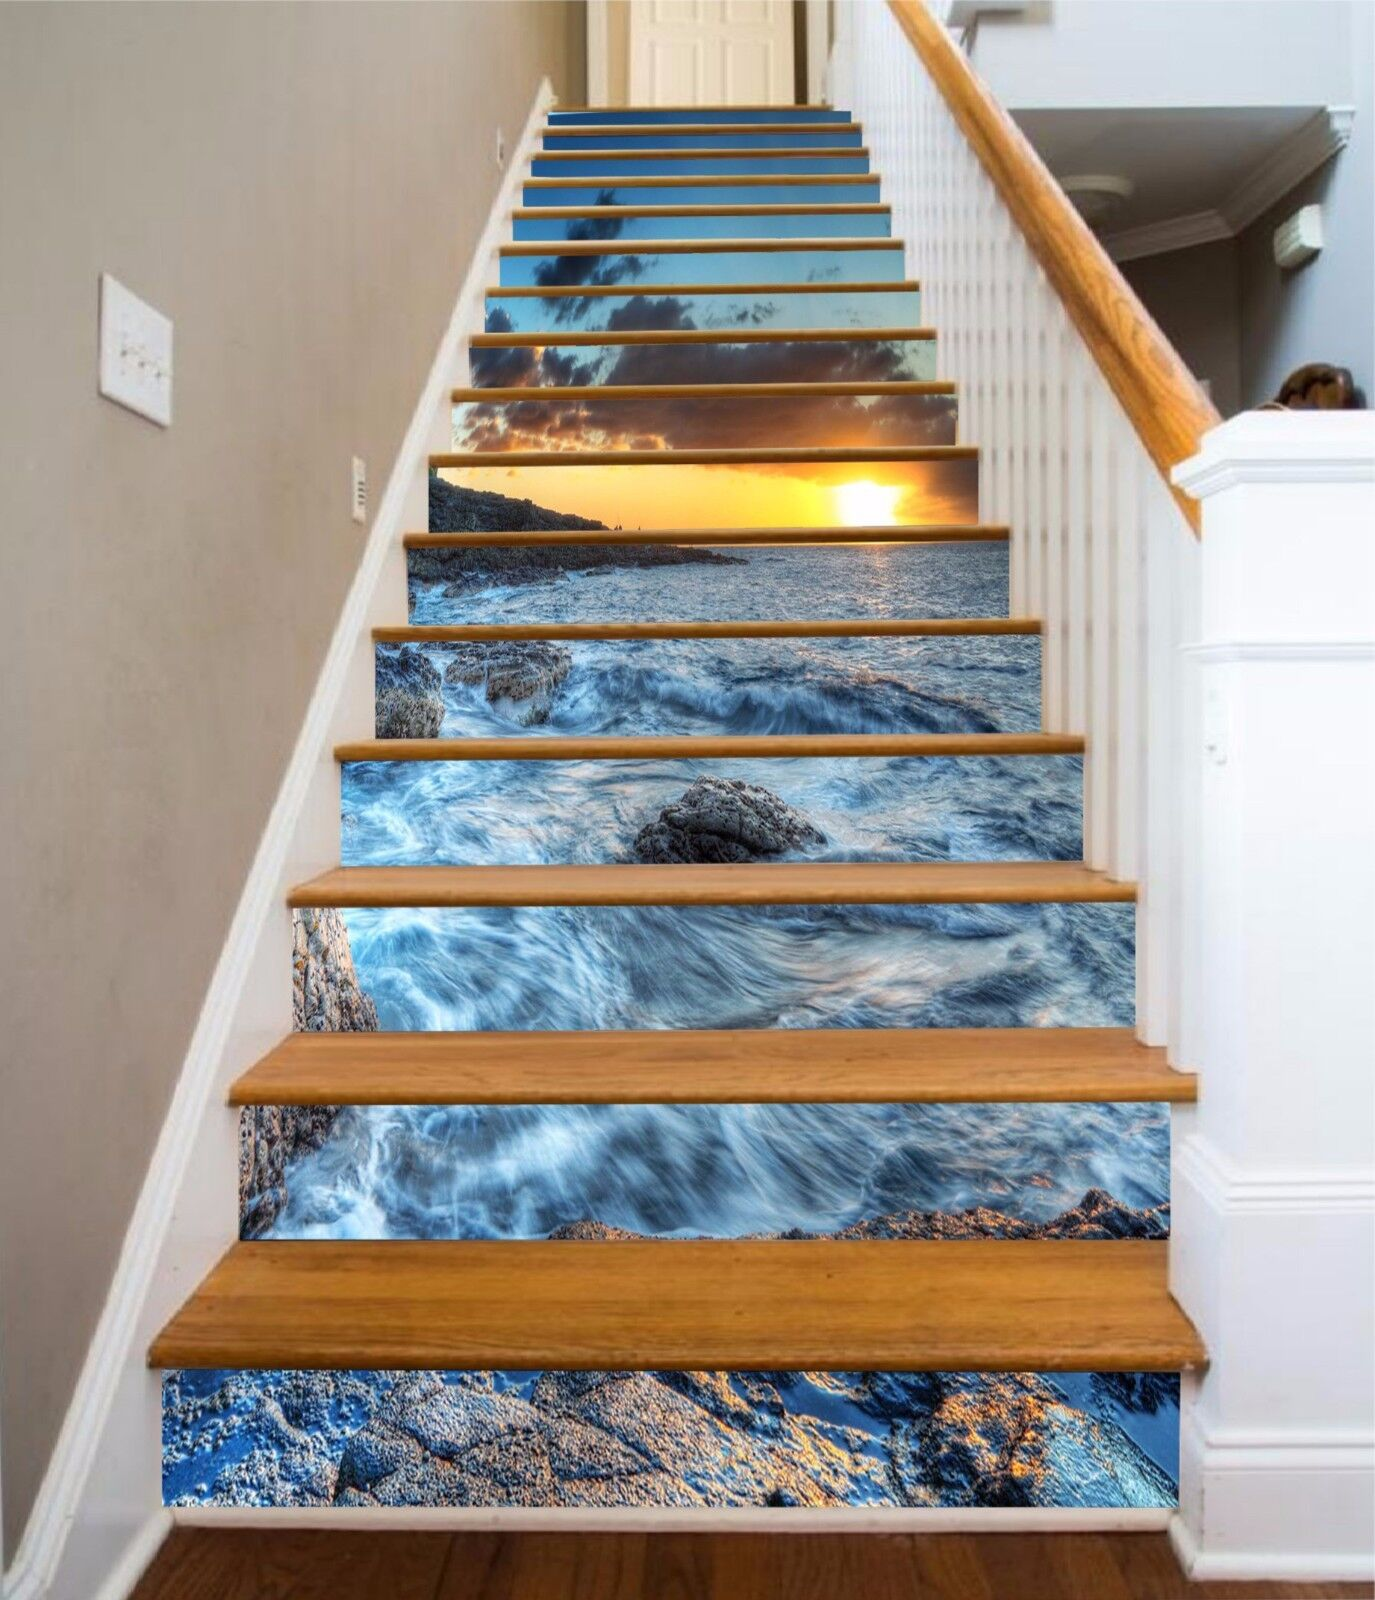 3D Sunrise Sea 958 Stair Risers Decoration Photo Mural Vinyl Decal Wallpaper AU